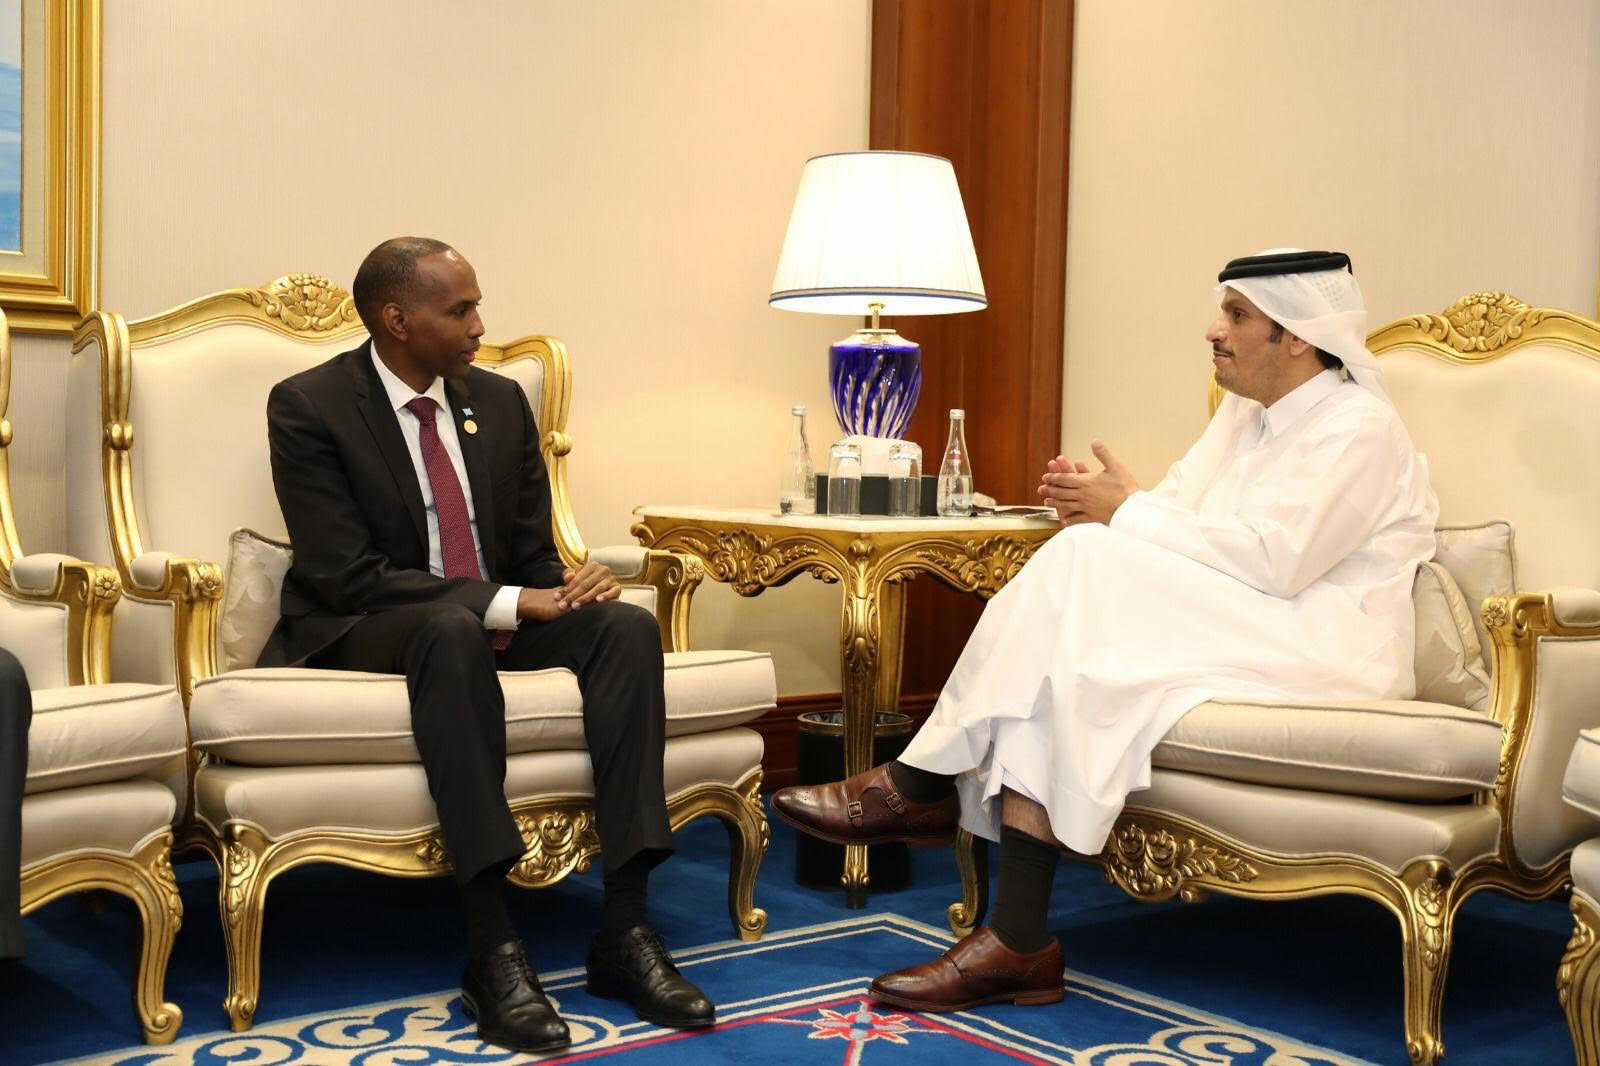 Deputy Prime Minister and Minister of Foreign Affairs Meets Somali Prime Minister